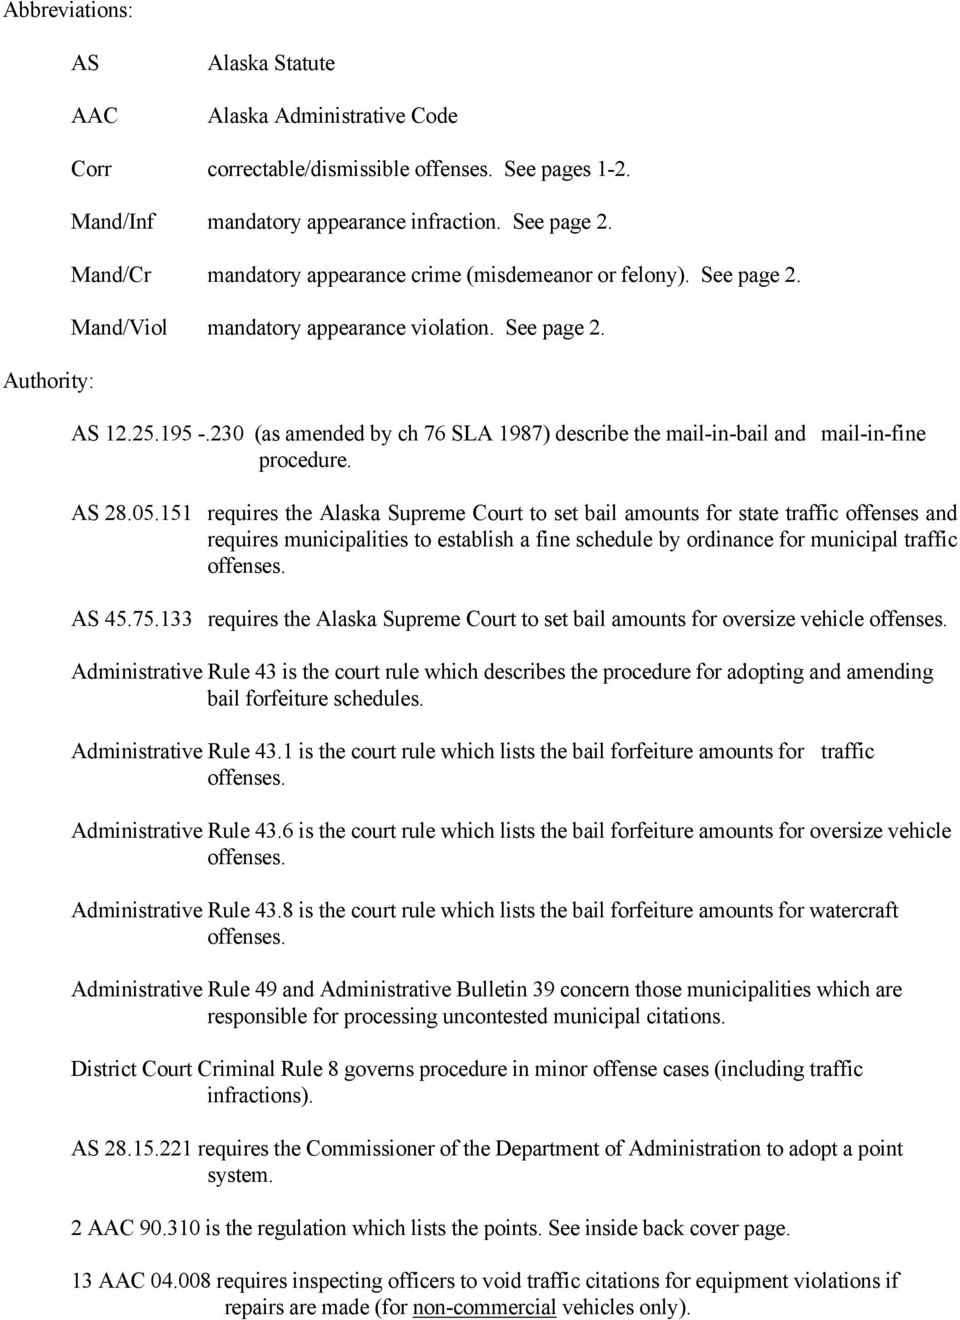 230 (as amended by ch 76 SLA 1987) describe the mail-in-bail and mail-in-fine procedure. AS 28.05.